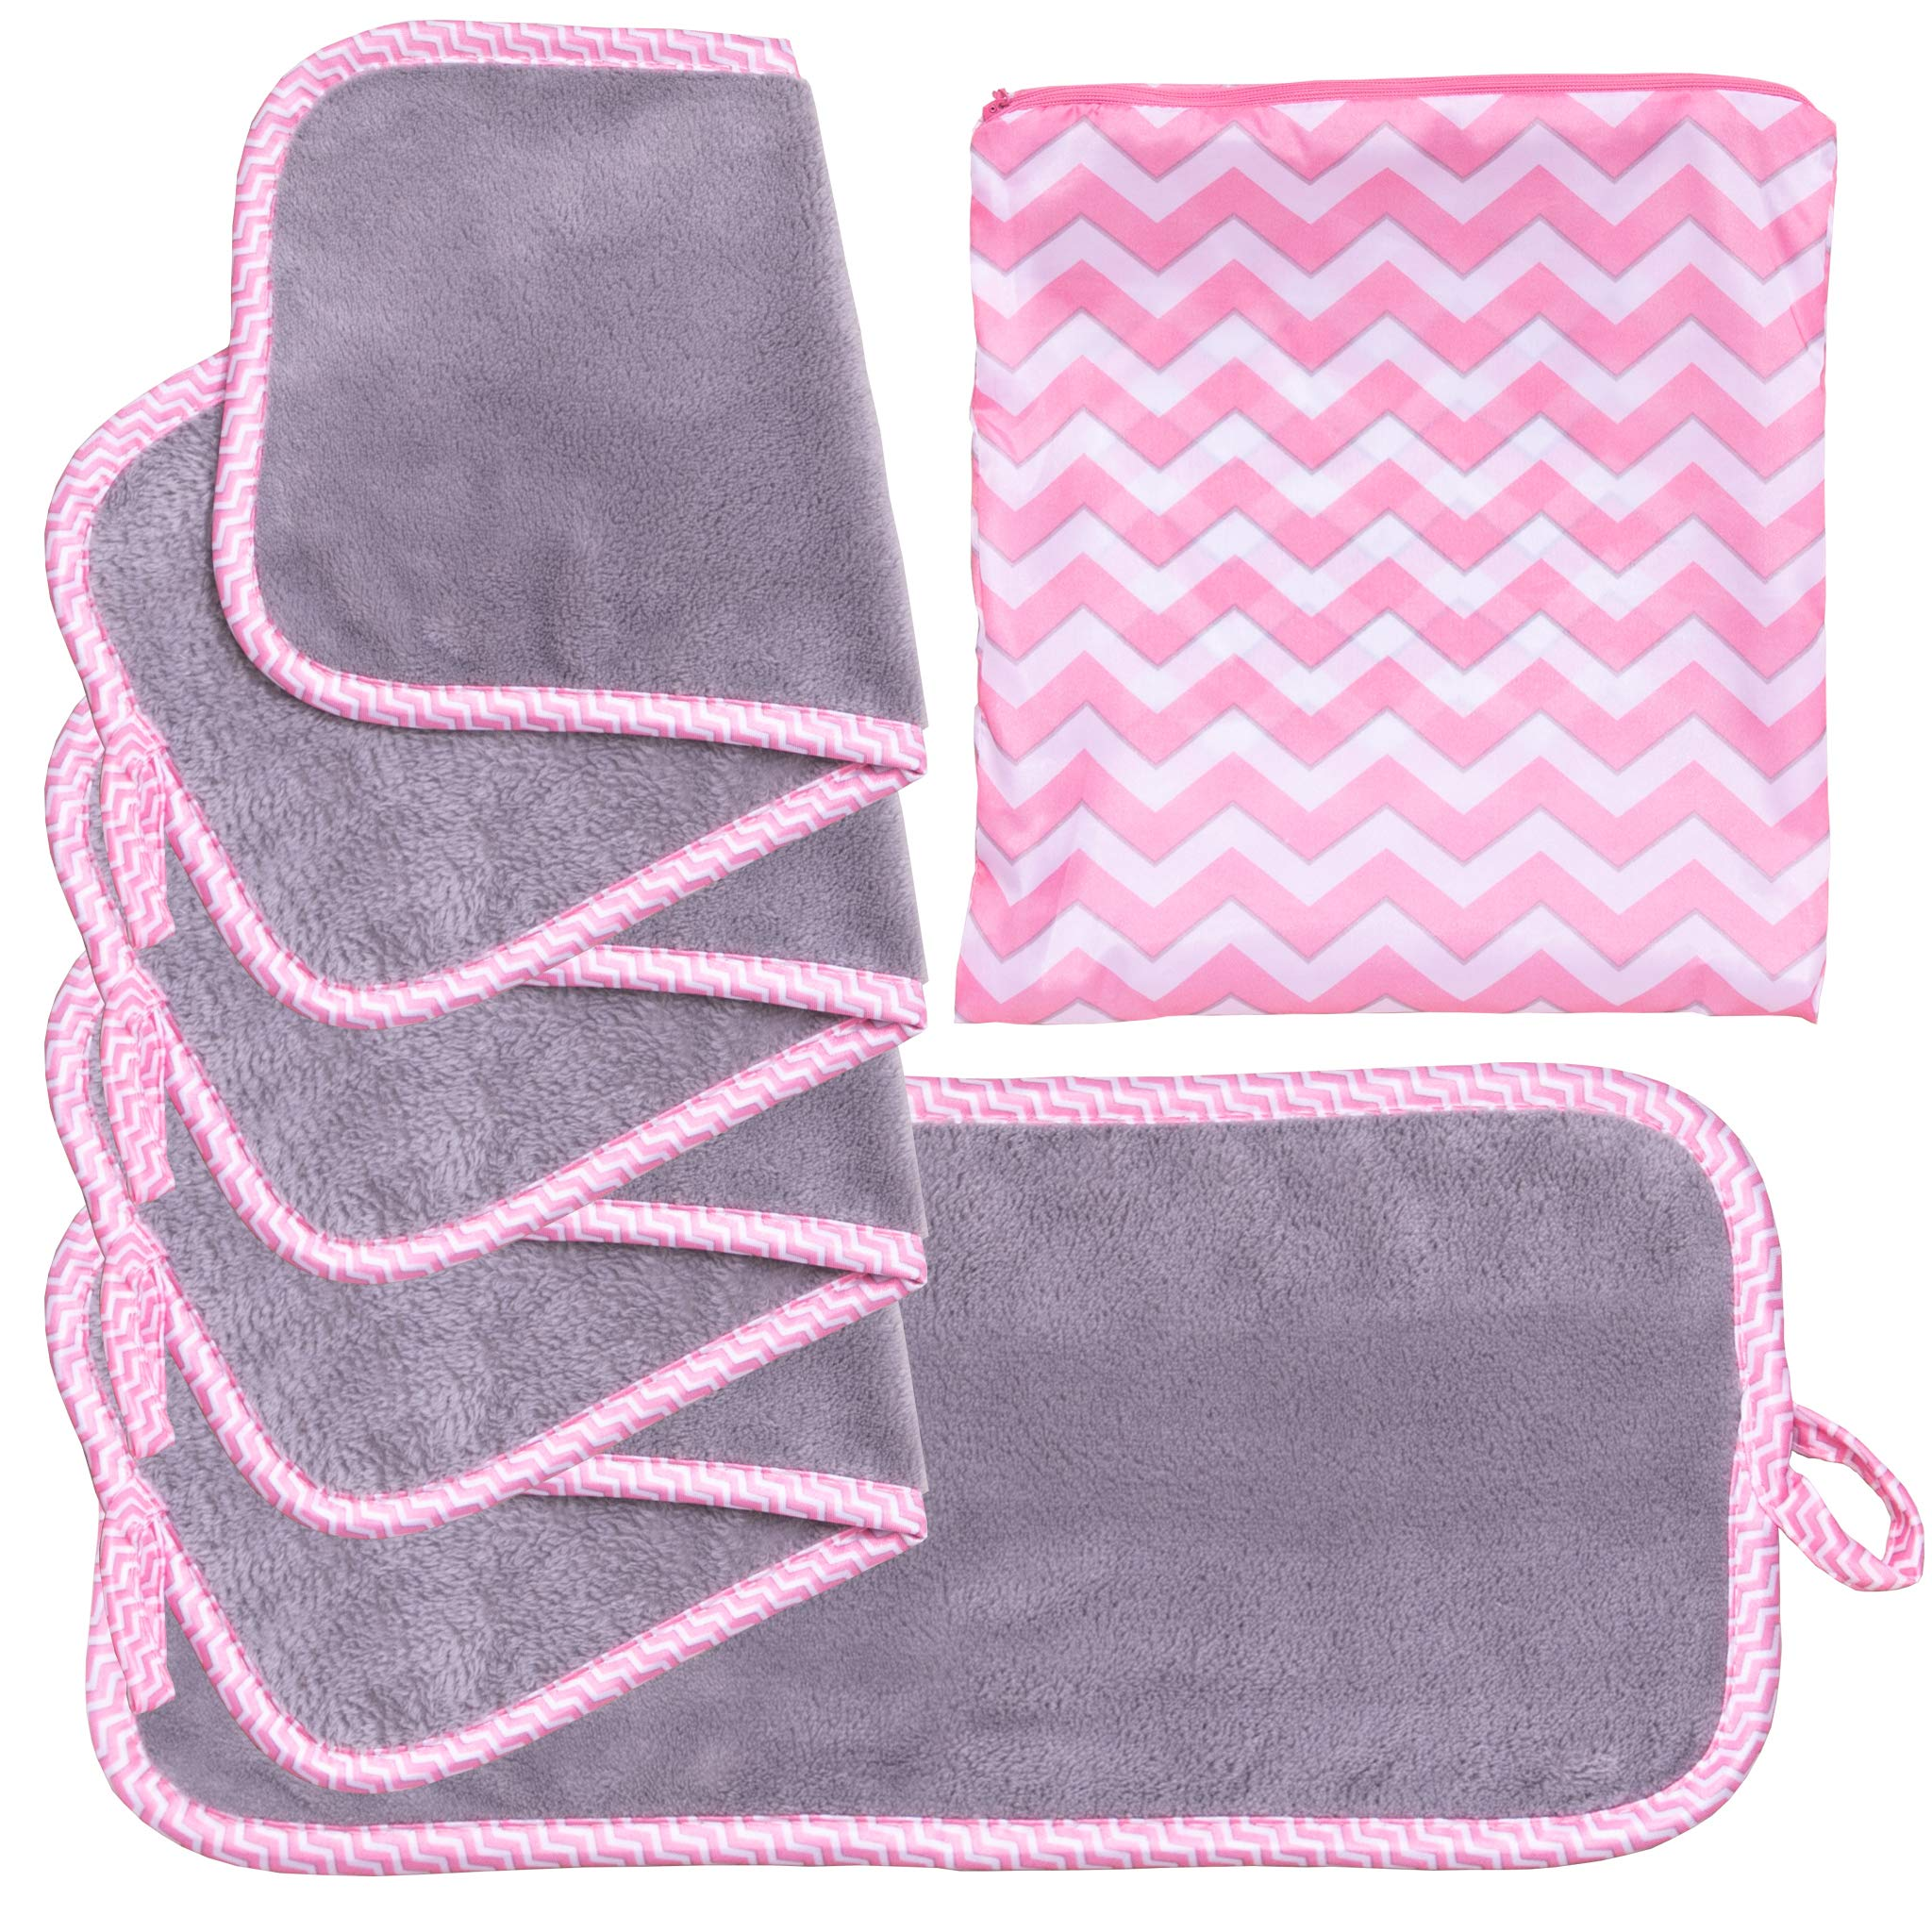 Set Of 5 FreshFace Makeup Remover Cloths by Campanelli (5pc, Chevron) by by CAMPANELLI